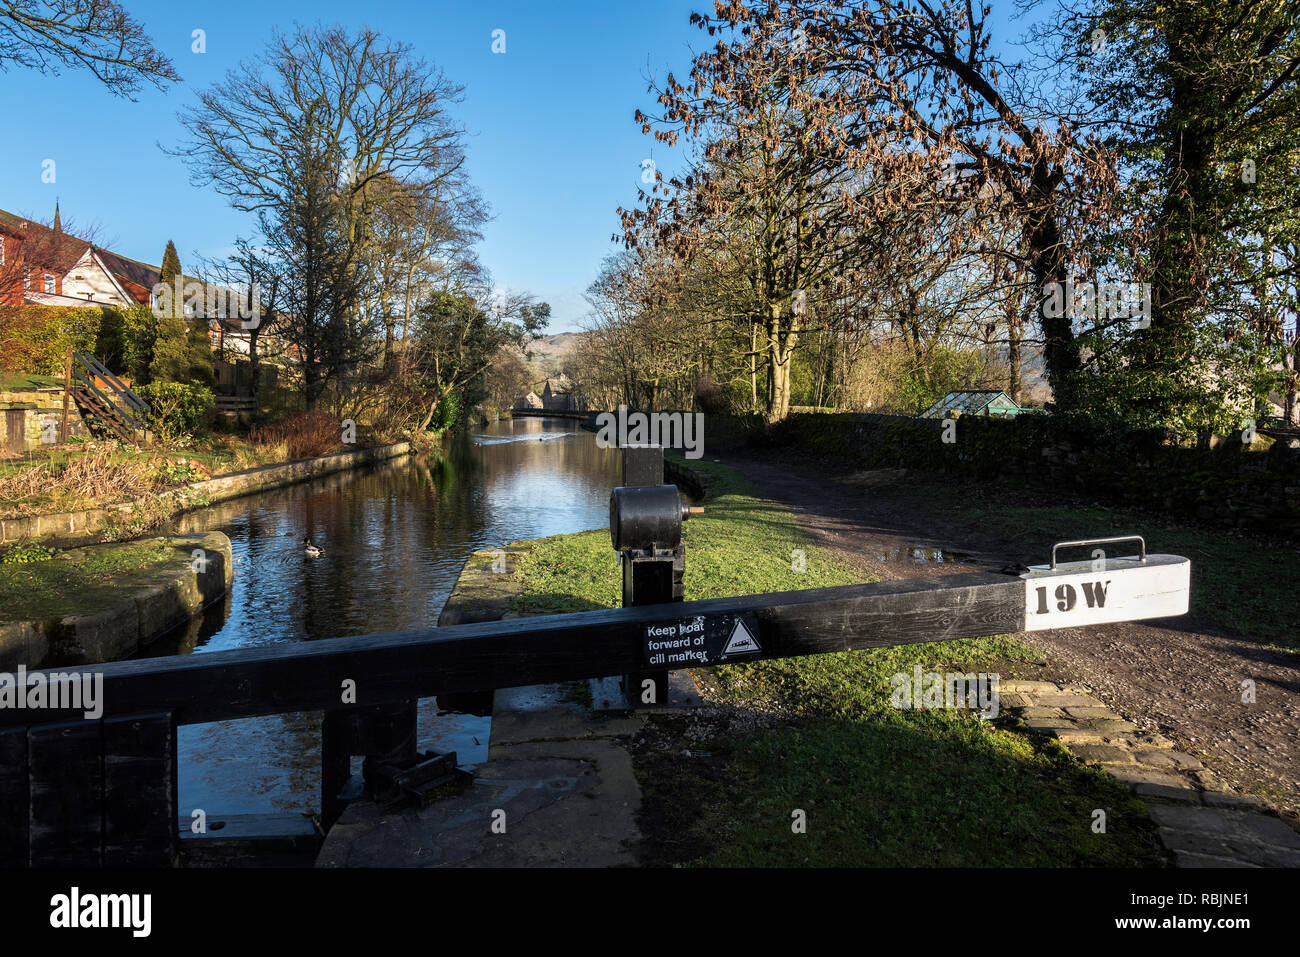 Huddersfield Narrow Canal, Greefield, Oldham, Lancashire UK. - Stock Image